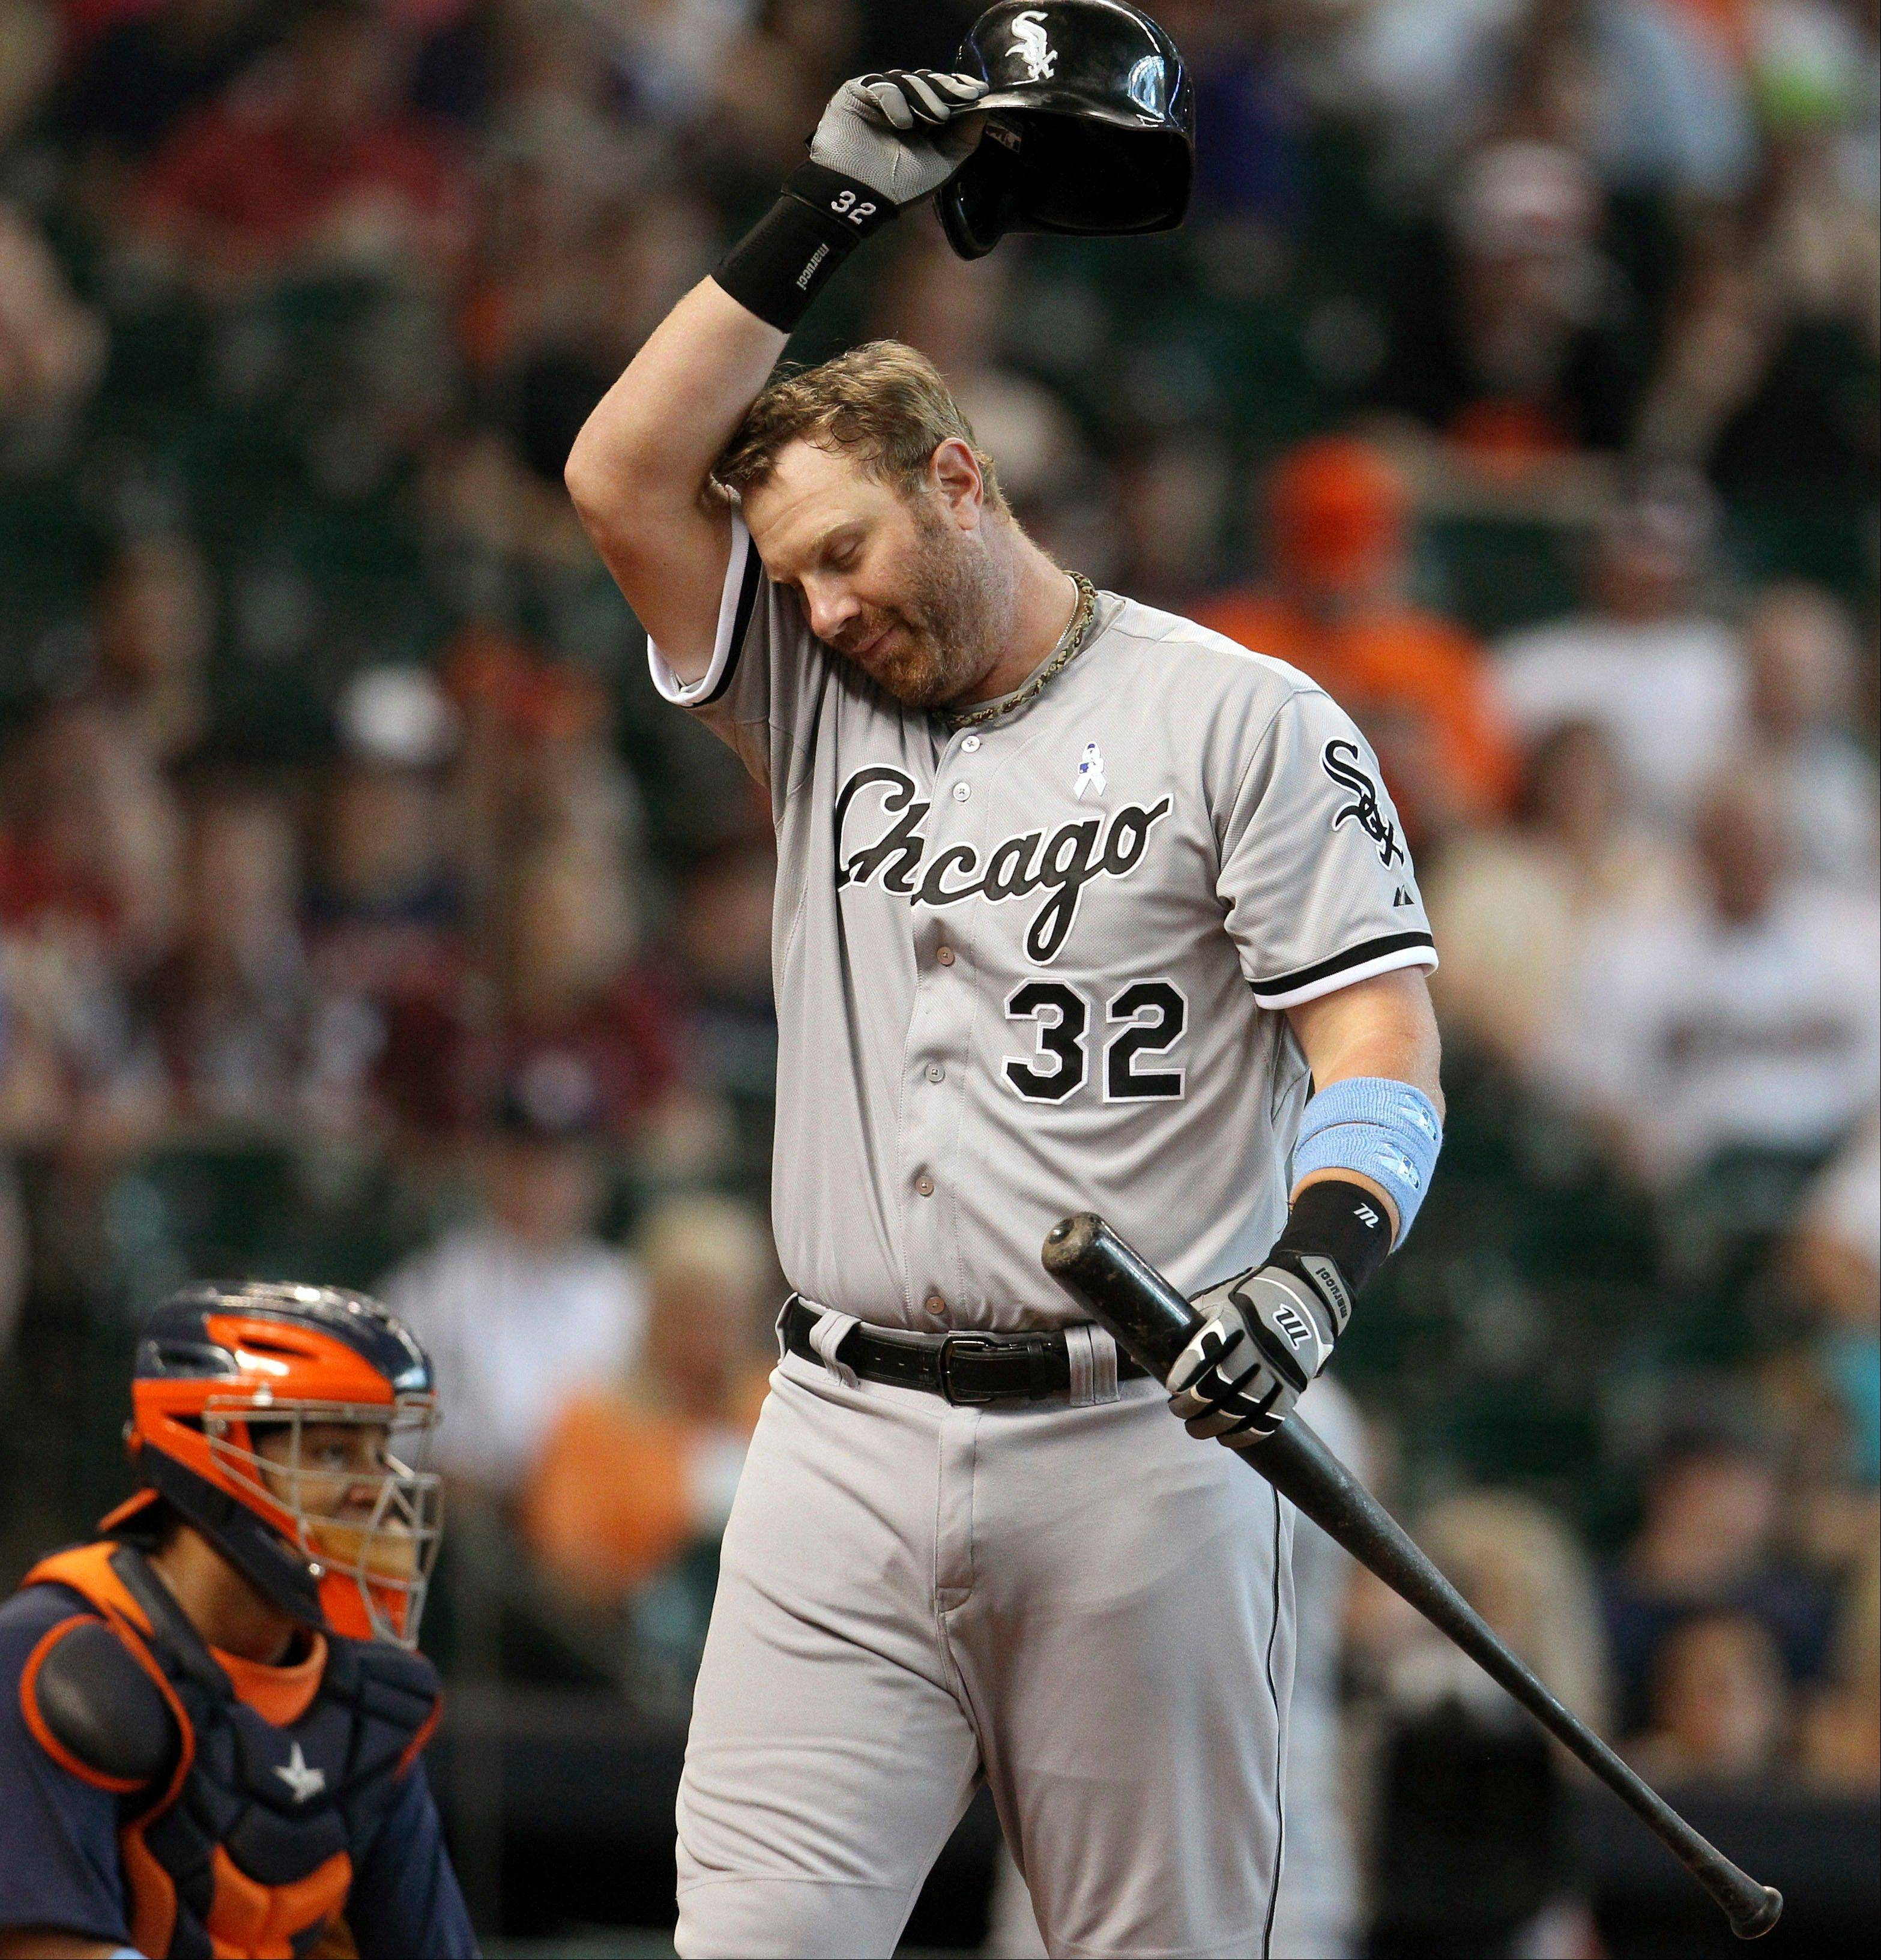 White Sox first baseman Adam Dunn wipes his face while at bat against the Houston Astros during the second inning of a baseball game at Minute Maid Park, Sunday, June 16, 2013, in Houston.